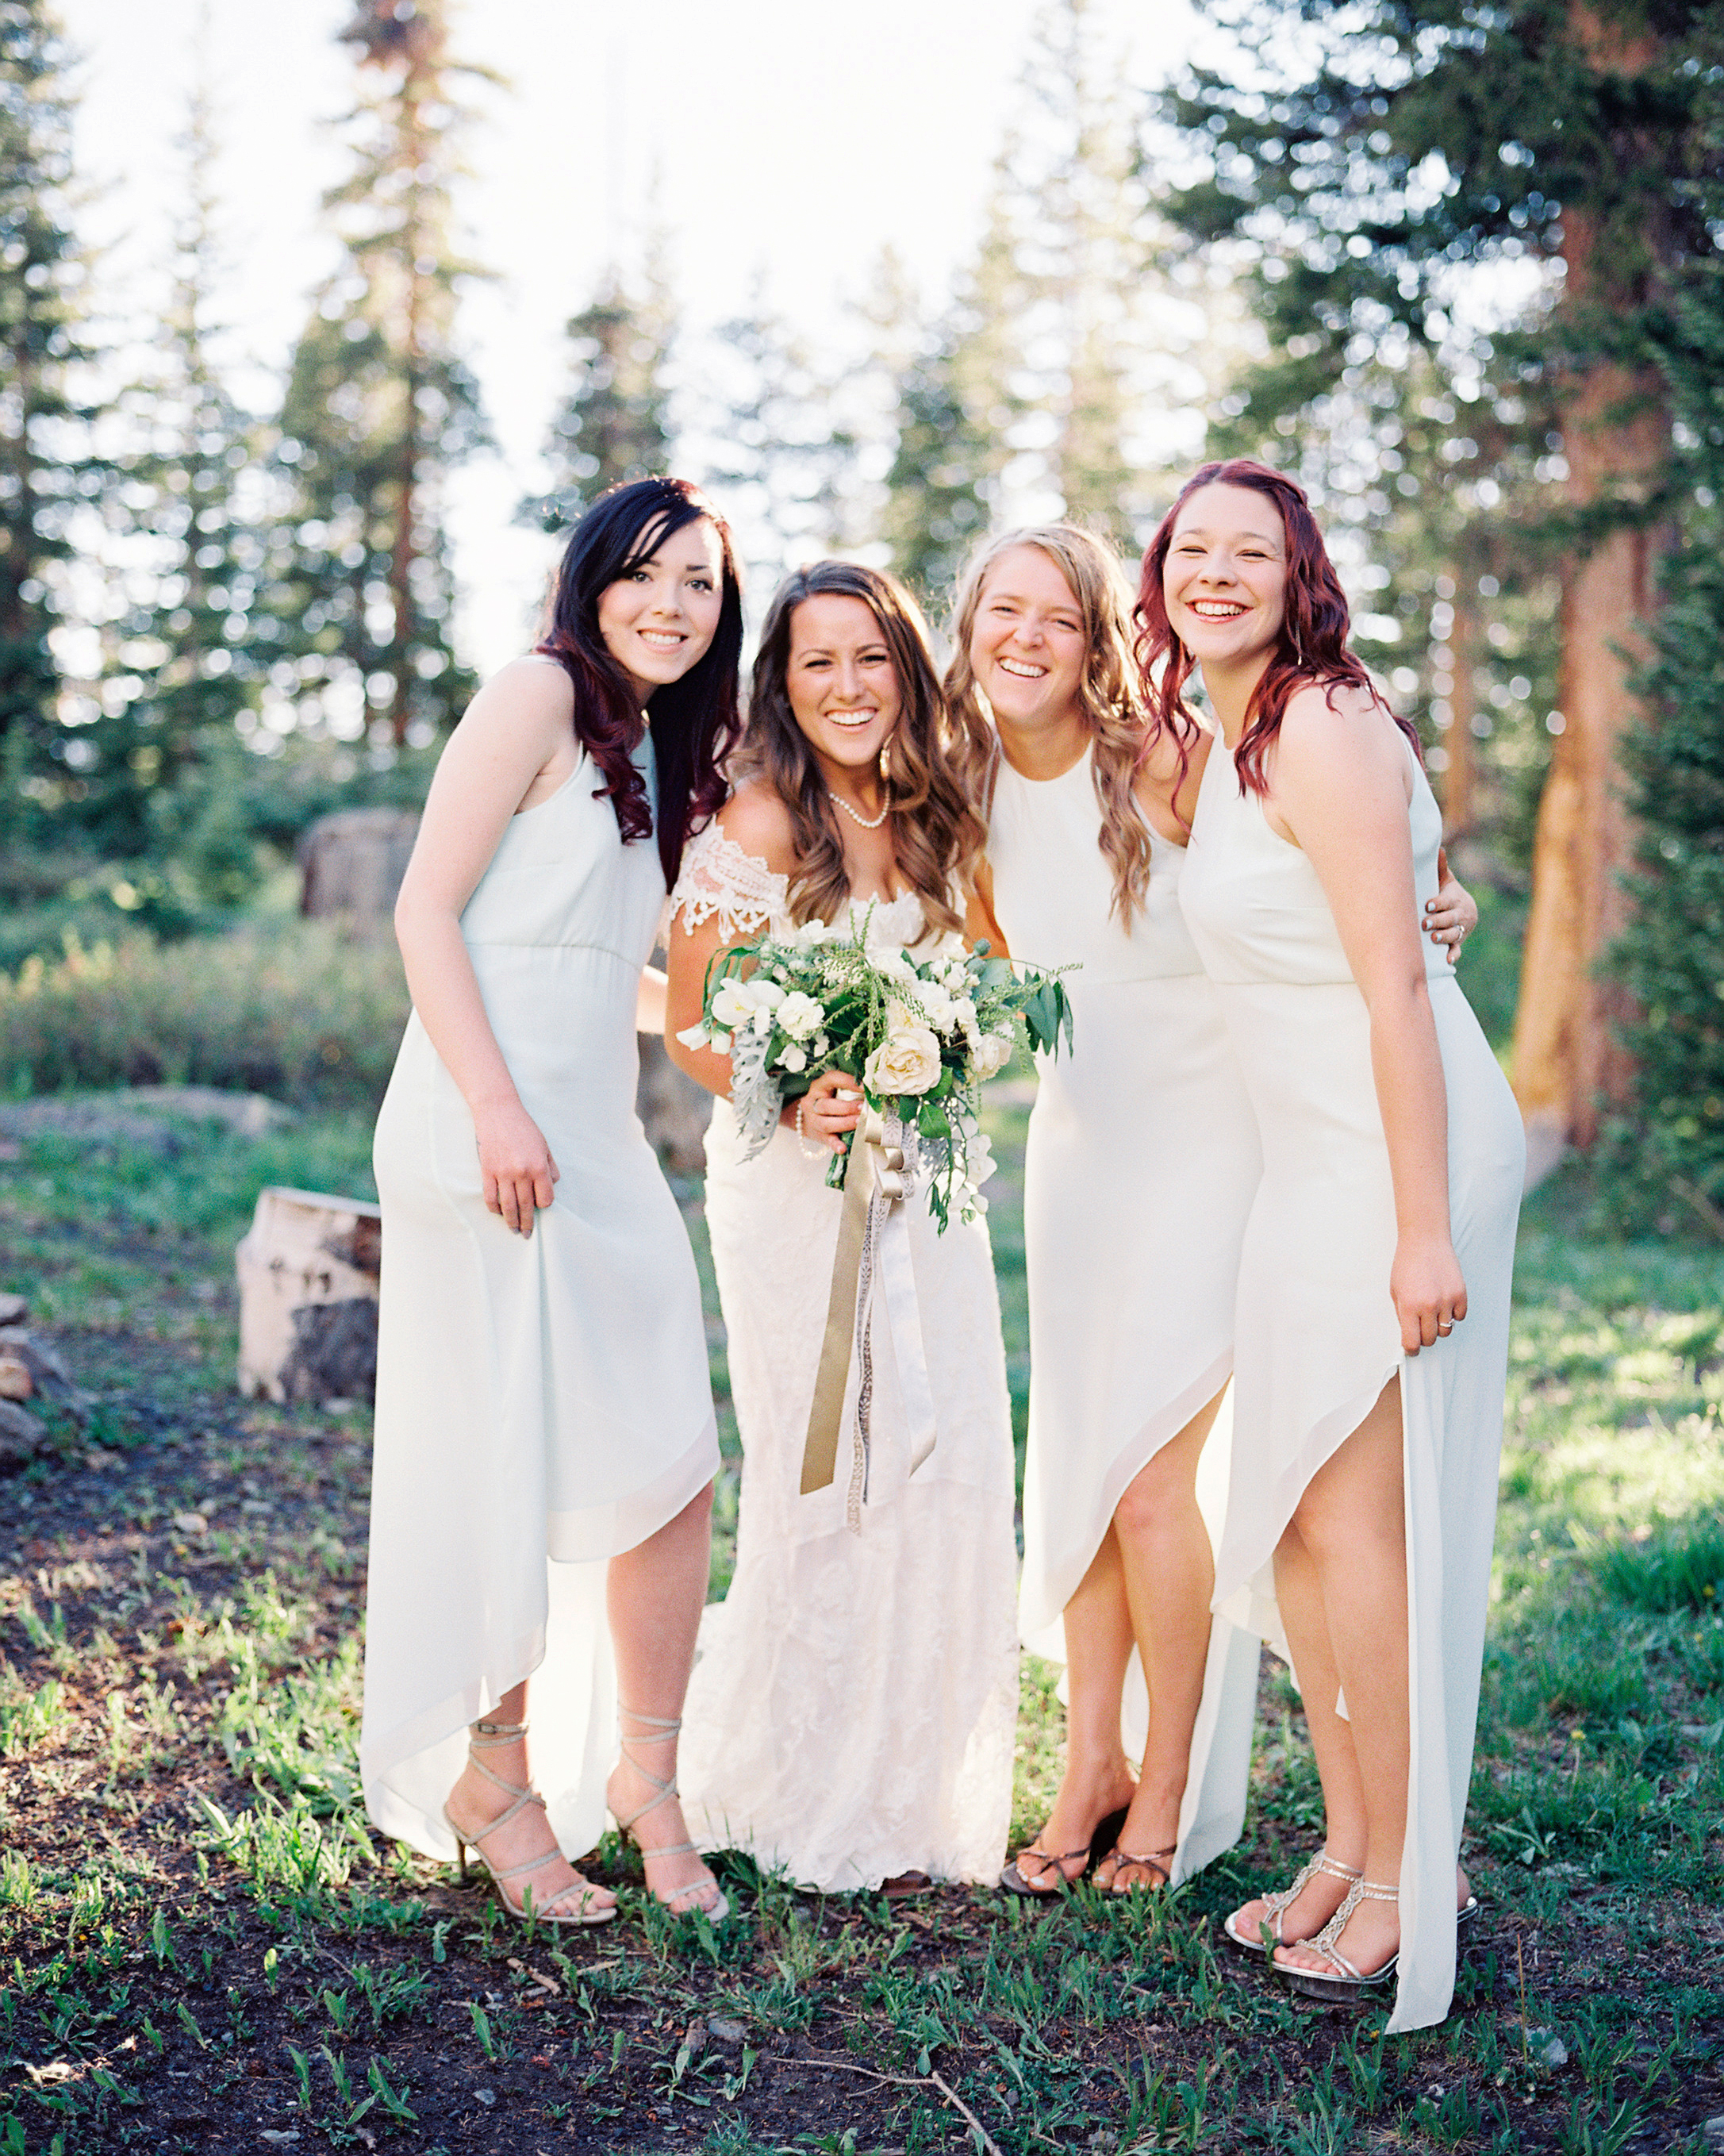 mckenzie-brandon-wedding-bridesmaids-70-s112364-1115.jpg